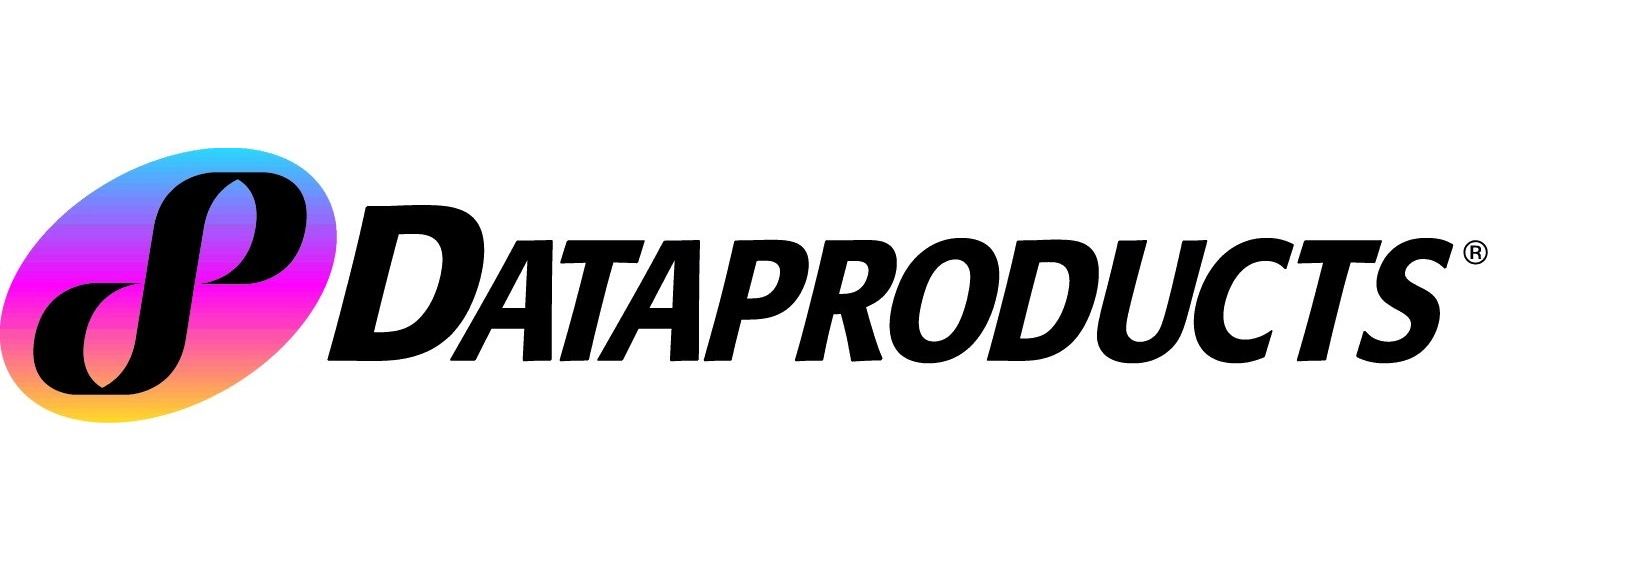 Dataproducts Coupons & Promo codes